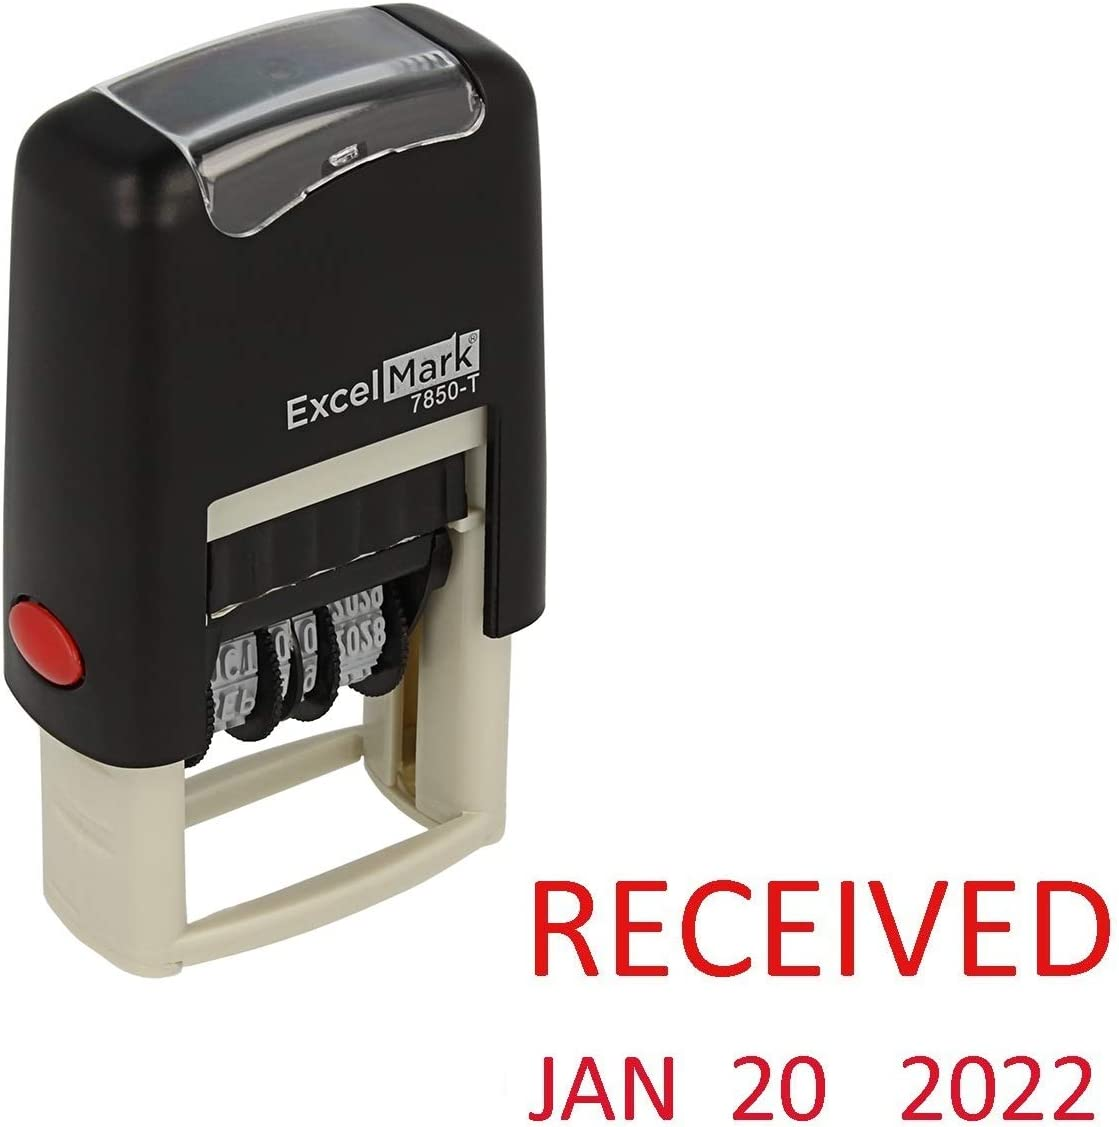 Received - ExcelMark Self-Inking Rubber Date Stamp - Compact Size - Red Ink